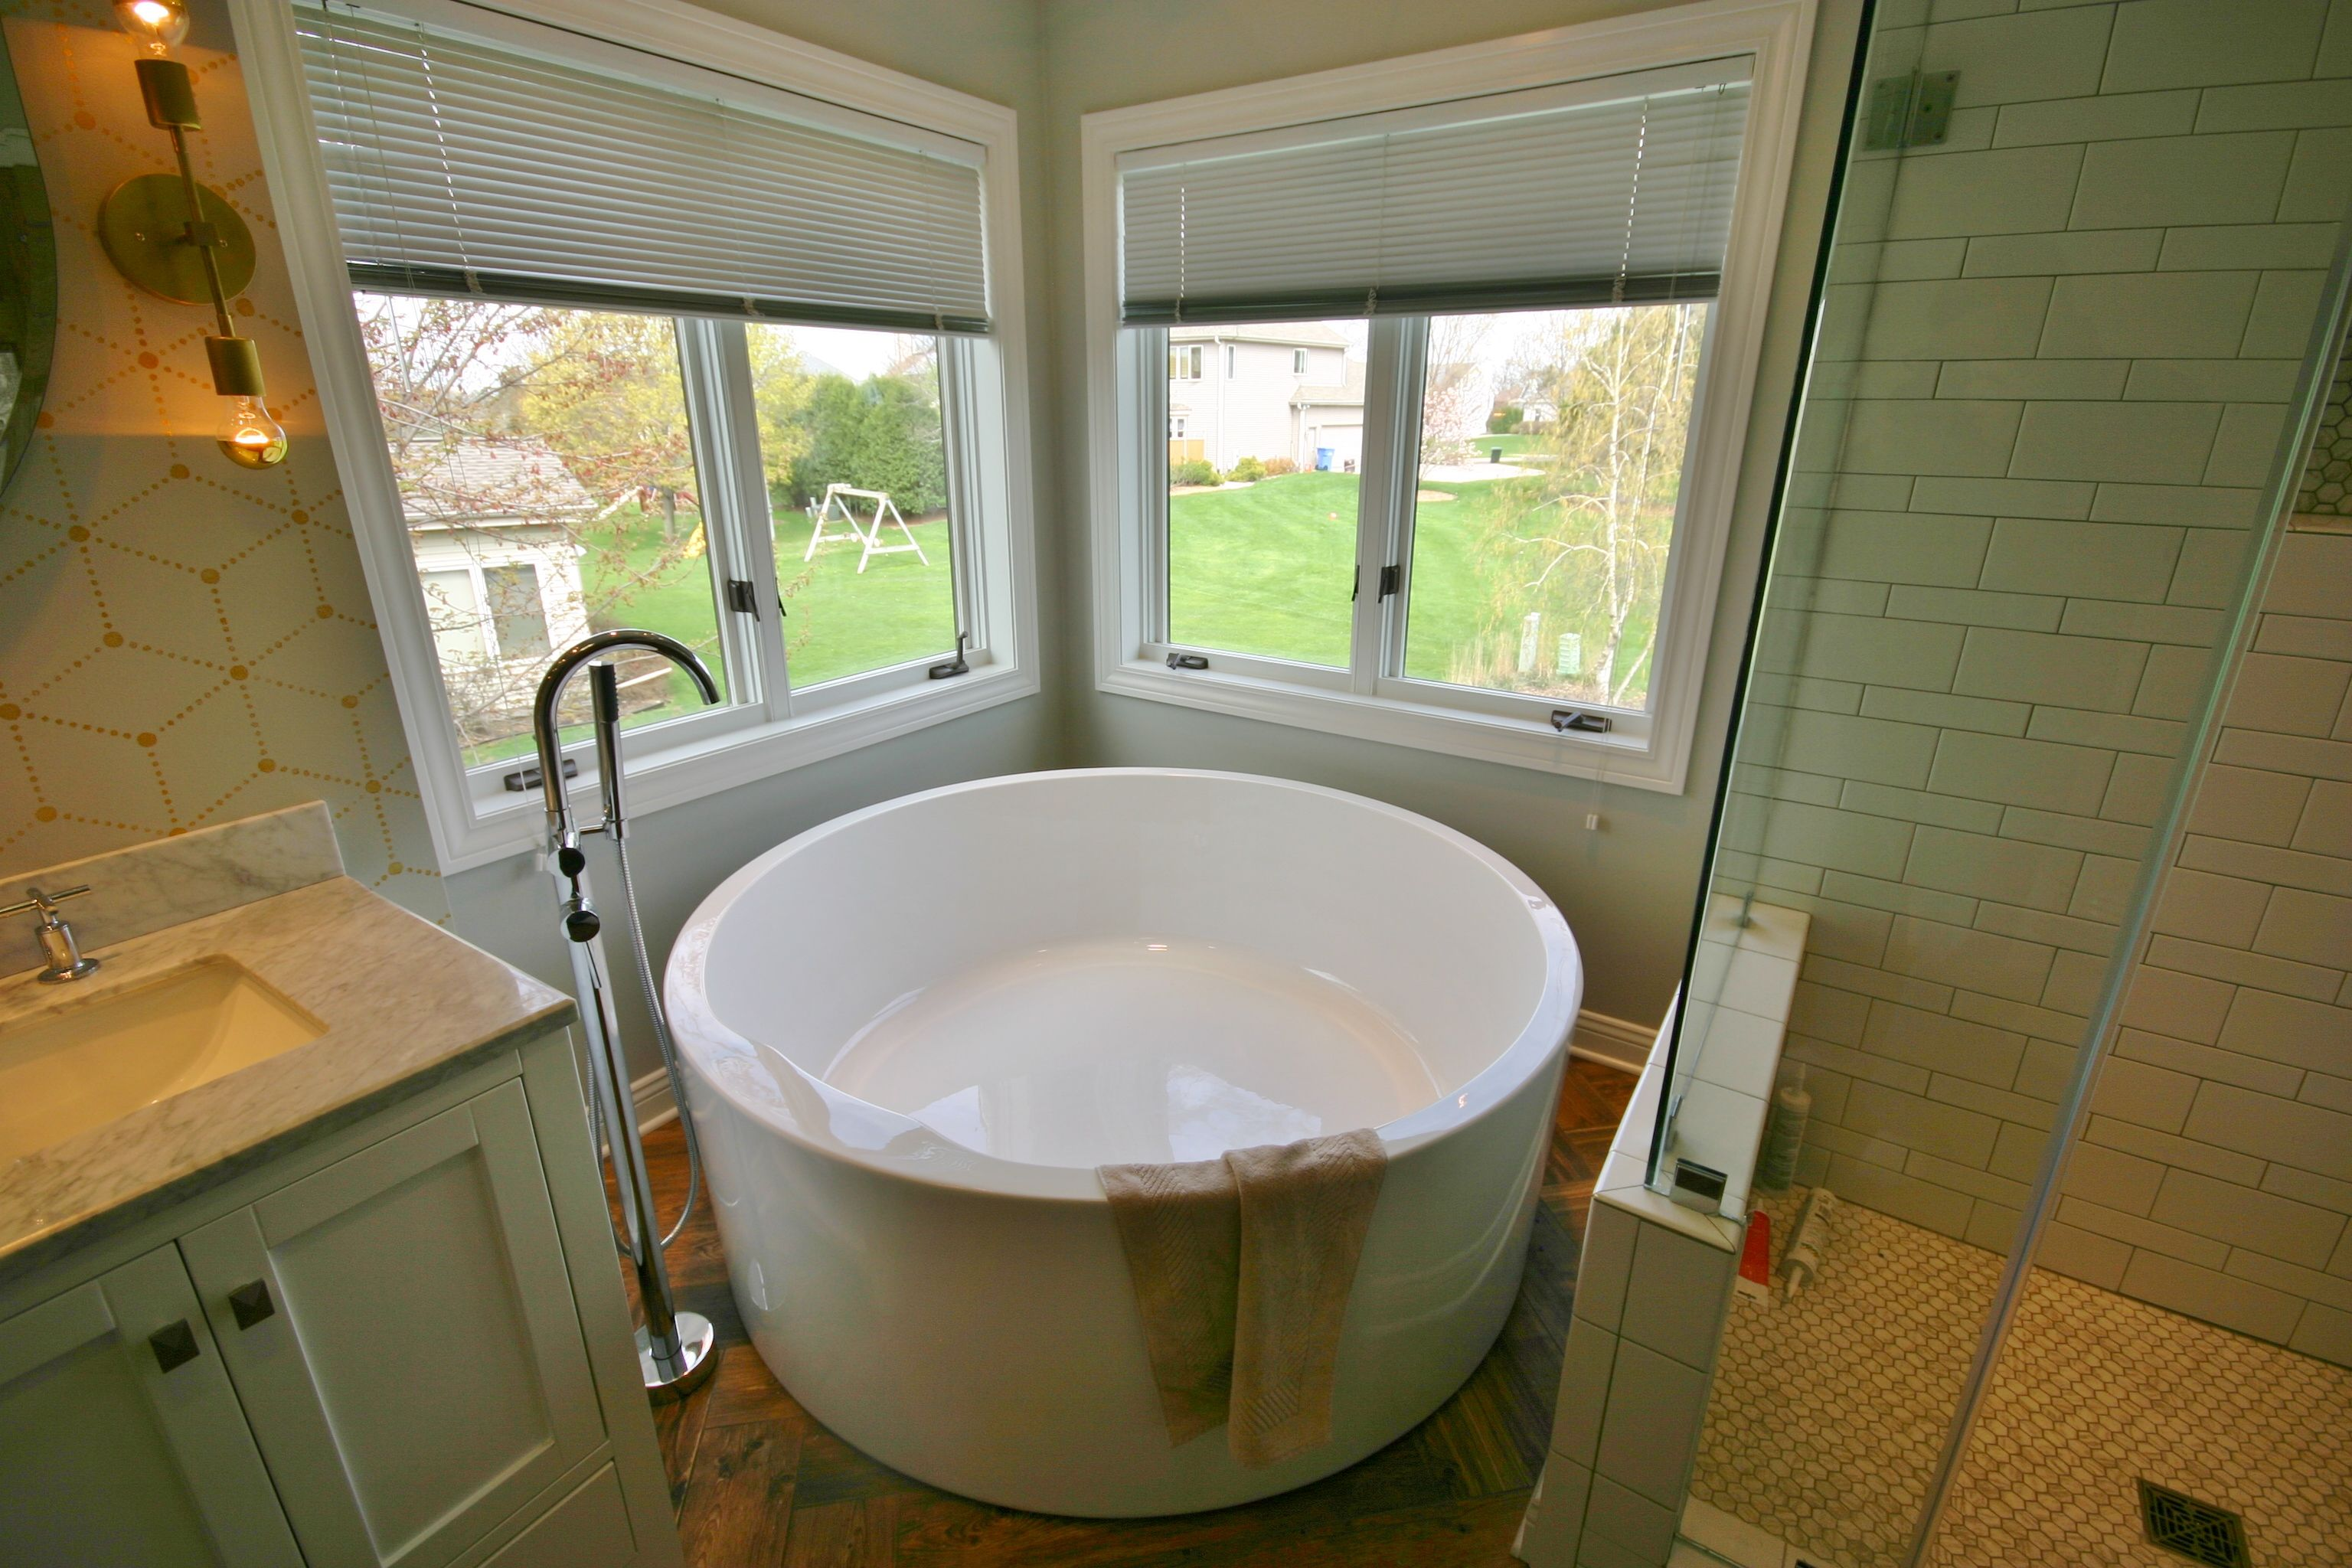 Round Soaker Tub, Walk In Tile Shower, Double Vanity, Shampoo